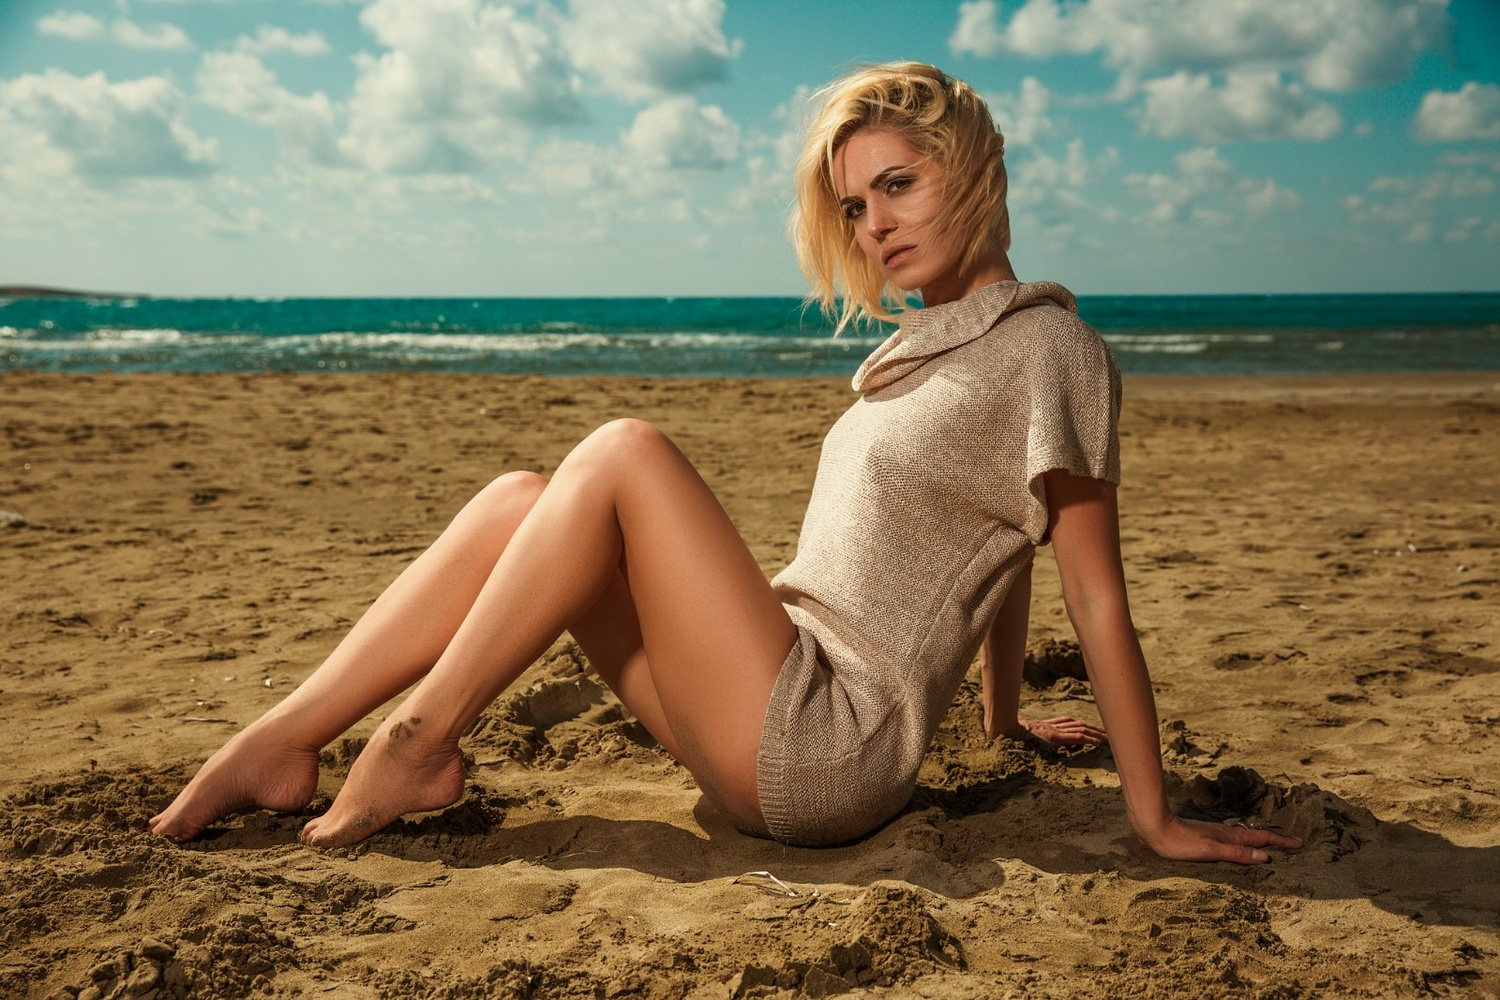 Girl on the beach by Christopher Stavrinides